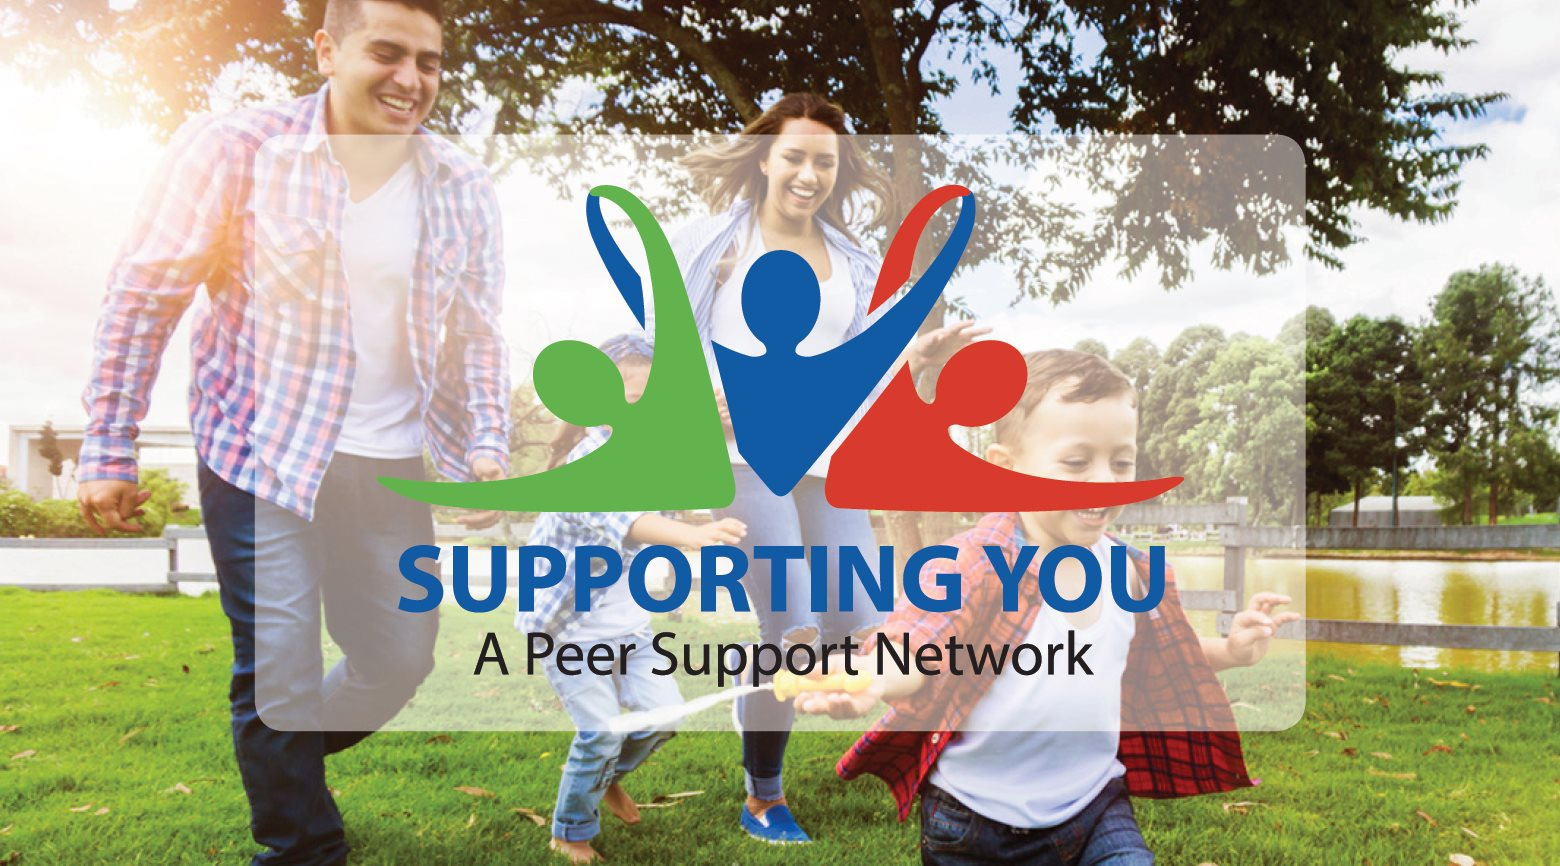 Supporting you A Peer Support Network